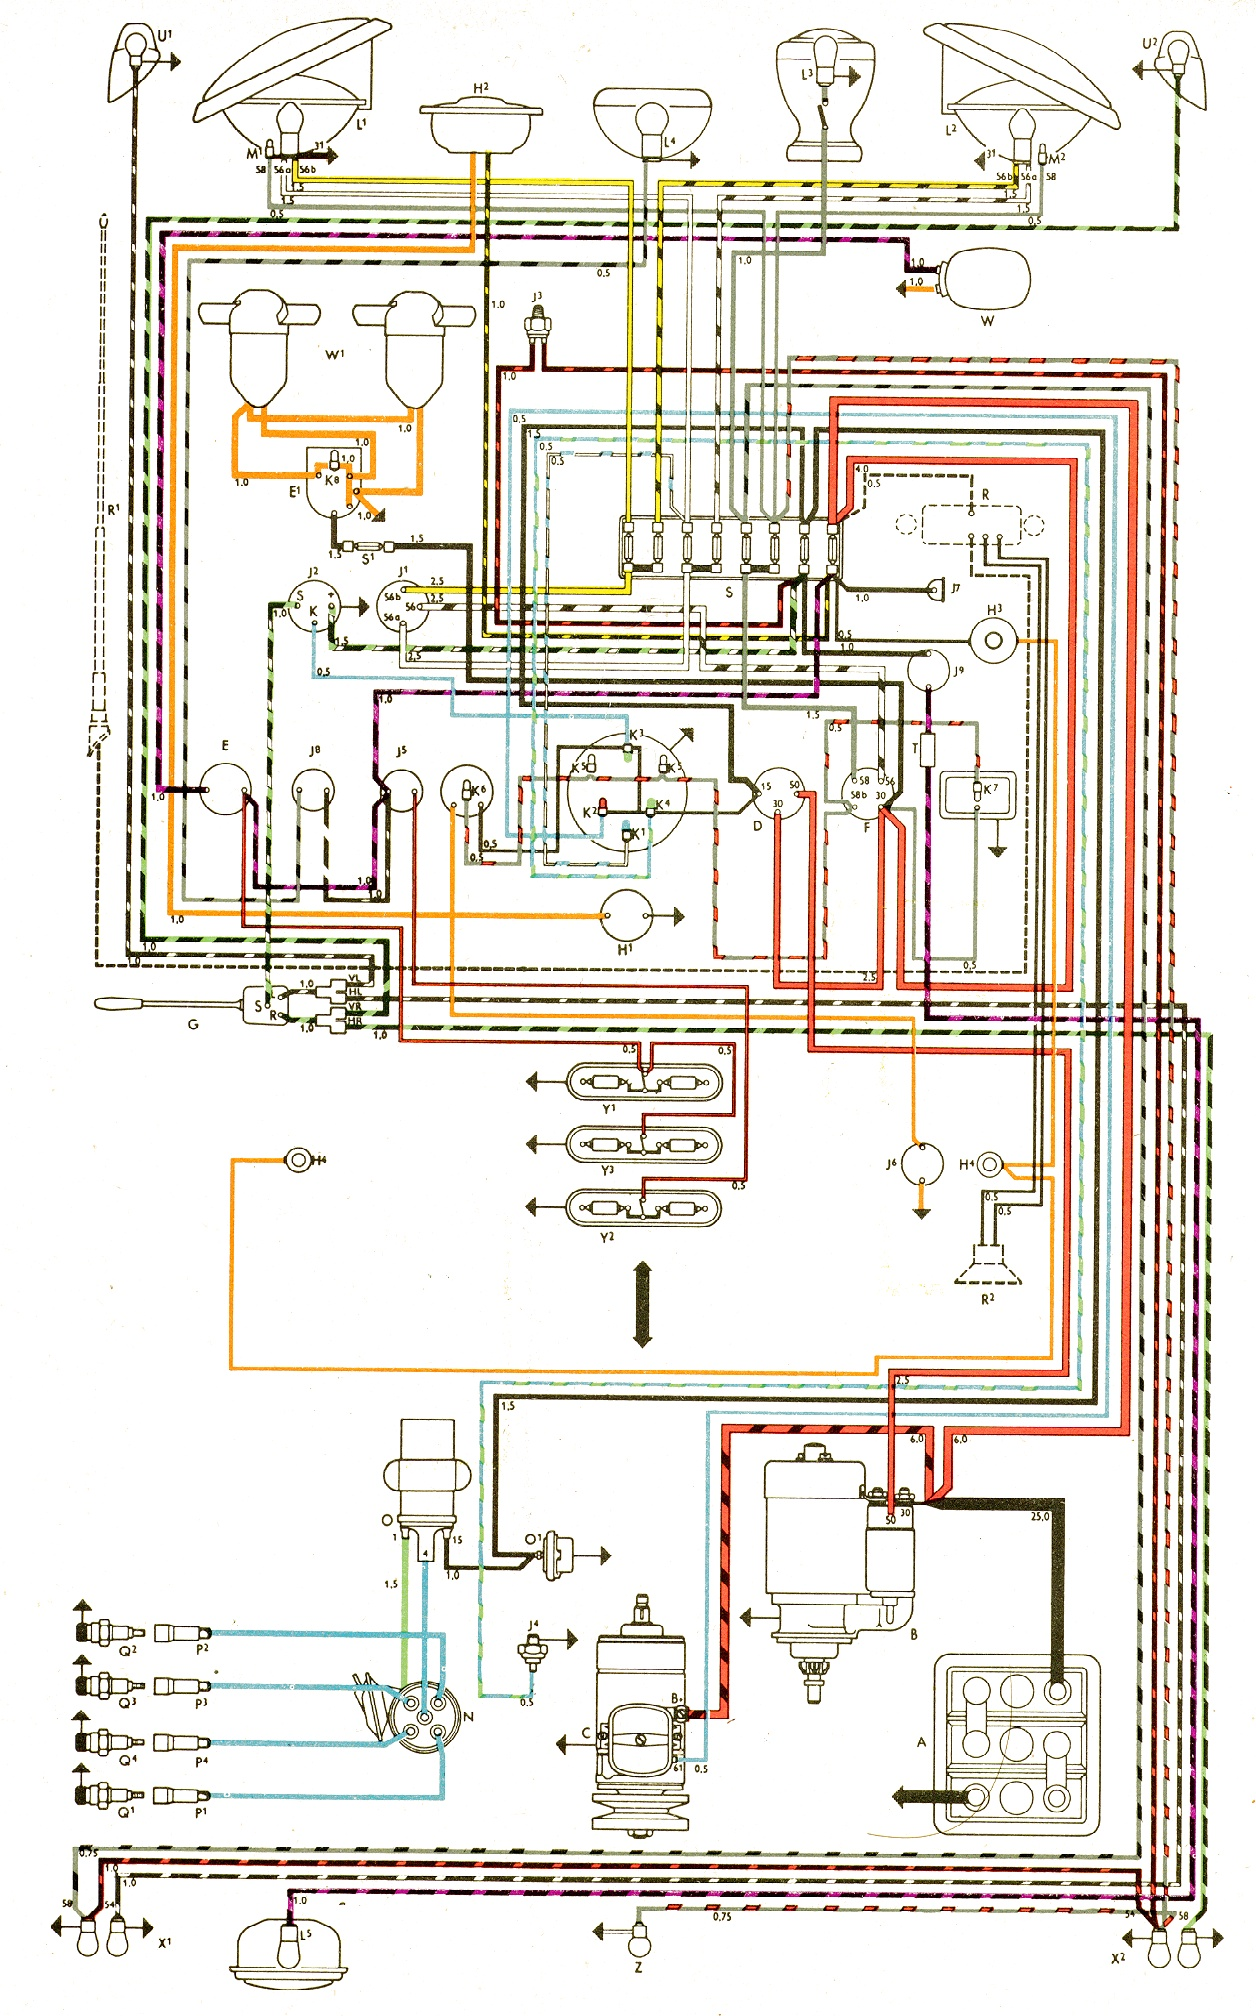 bus 62 vintagebus com vw bus (and other) wiring diagrams 1971 vw bus wiring diagram at crackthecode.co